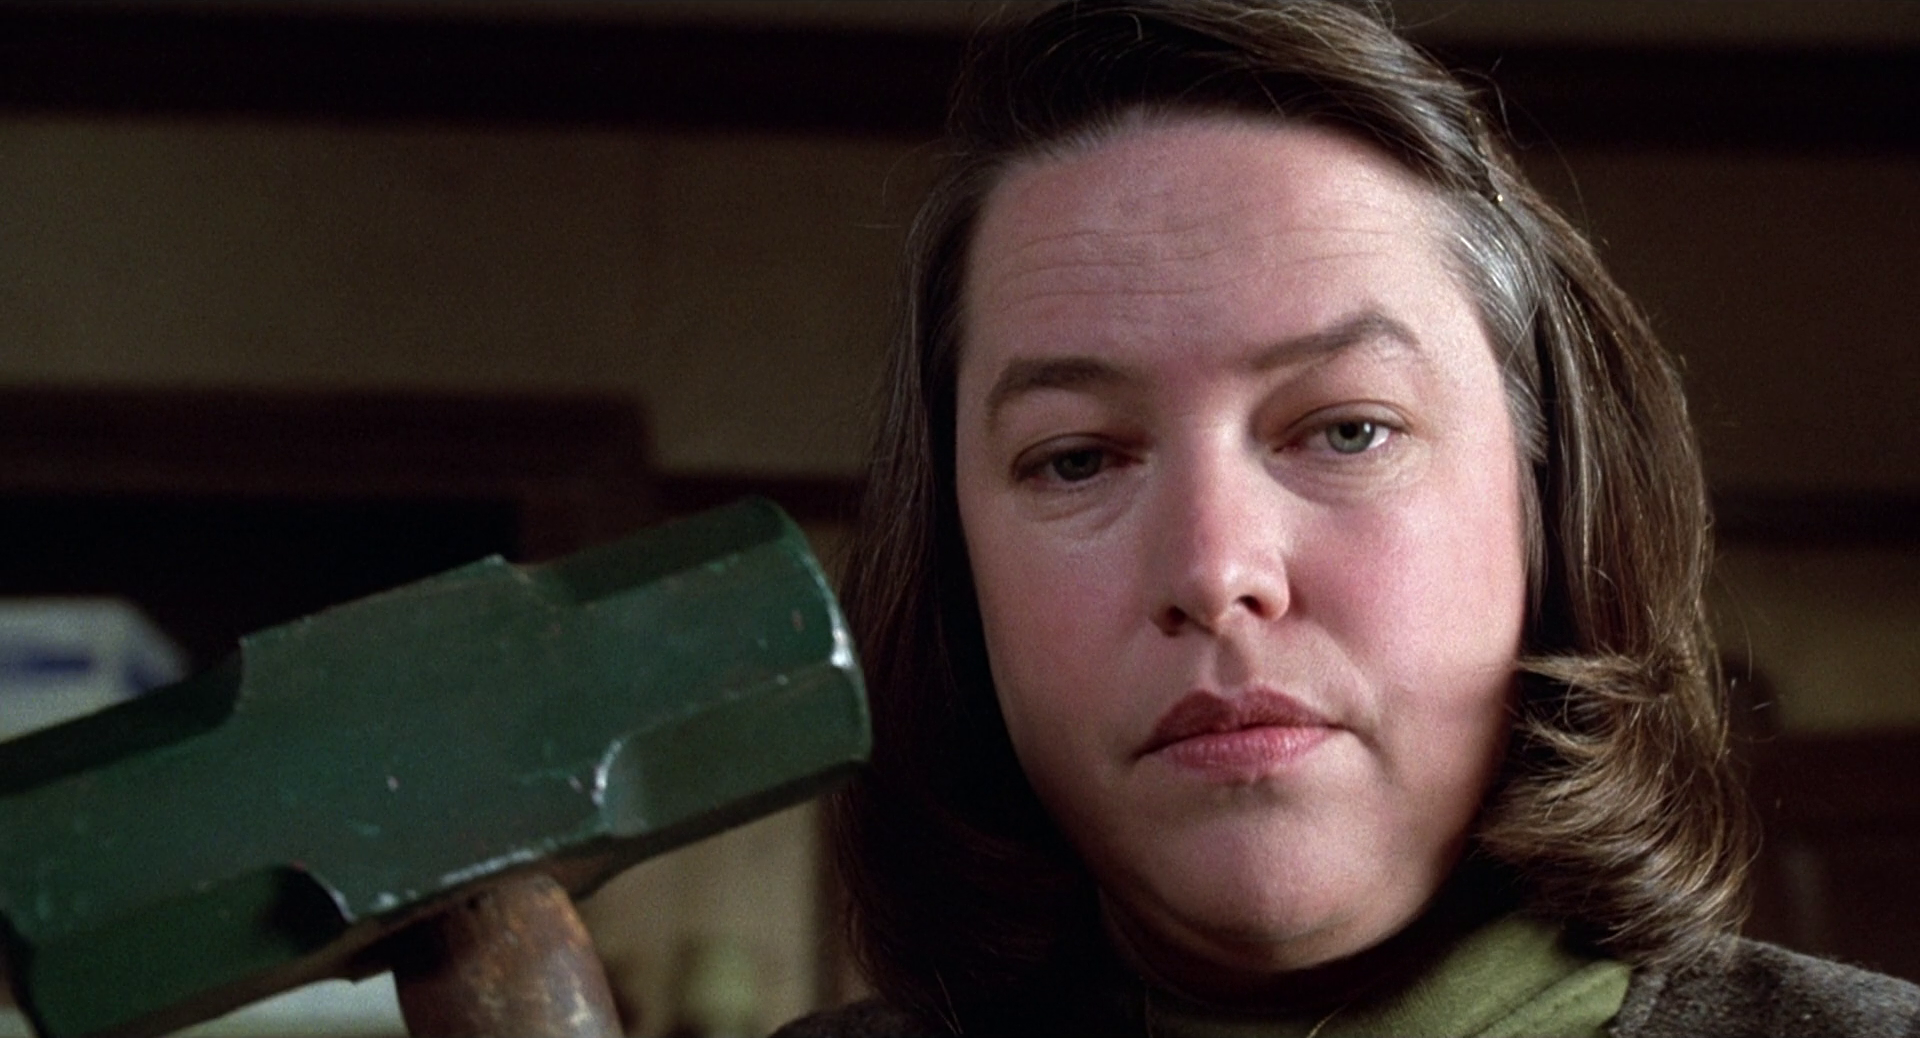 Misery_non_deve_morire_(film).png